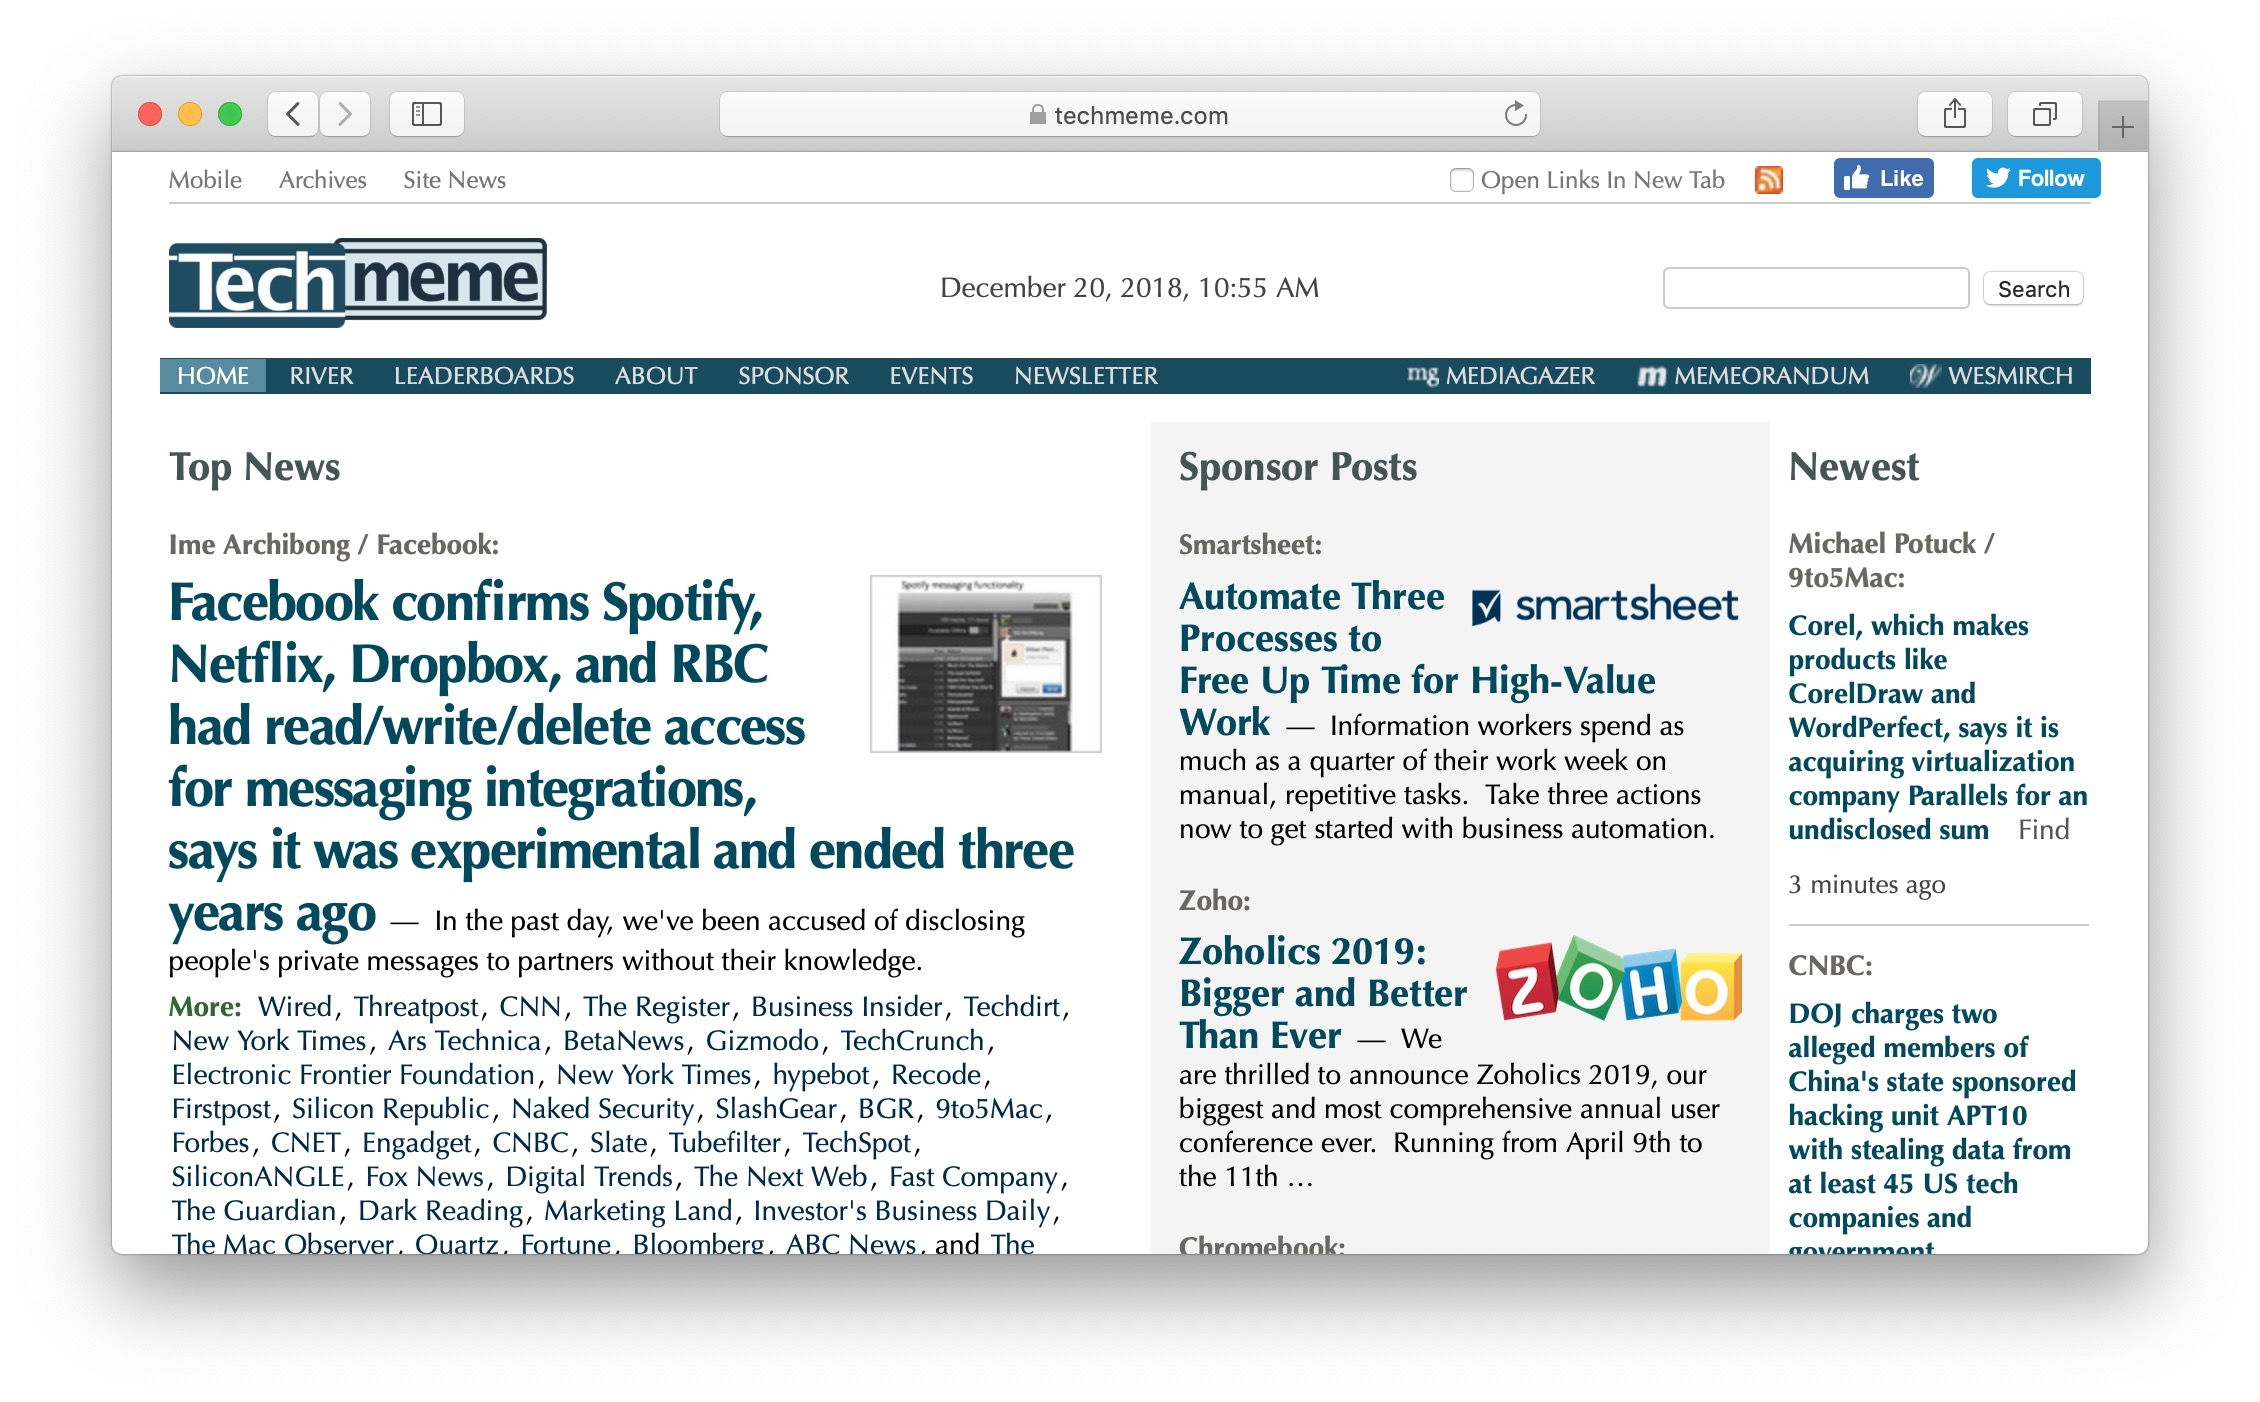 The front page of the TechMeme content aggregator